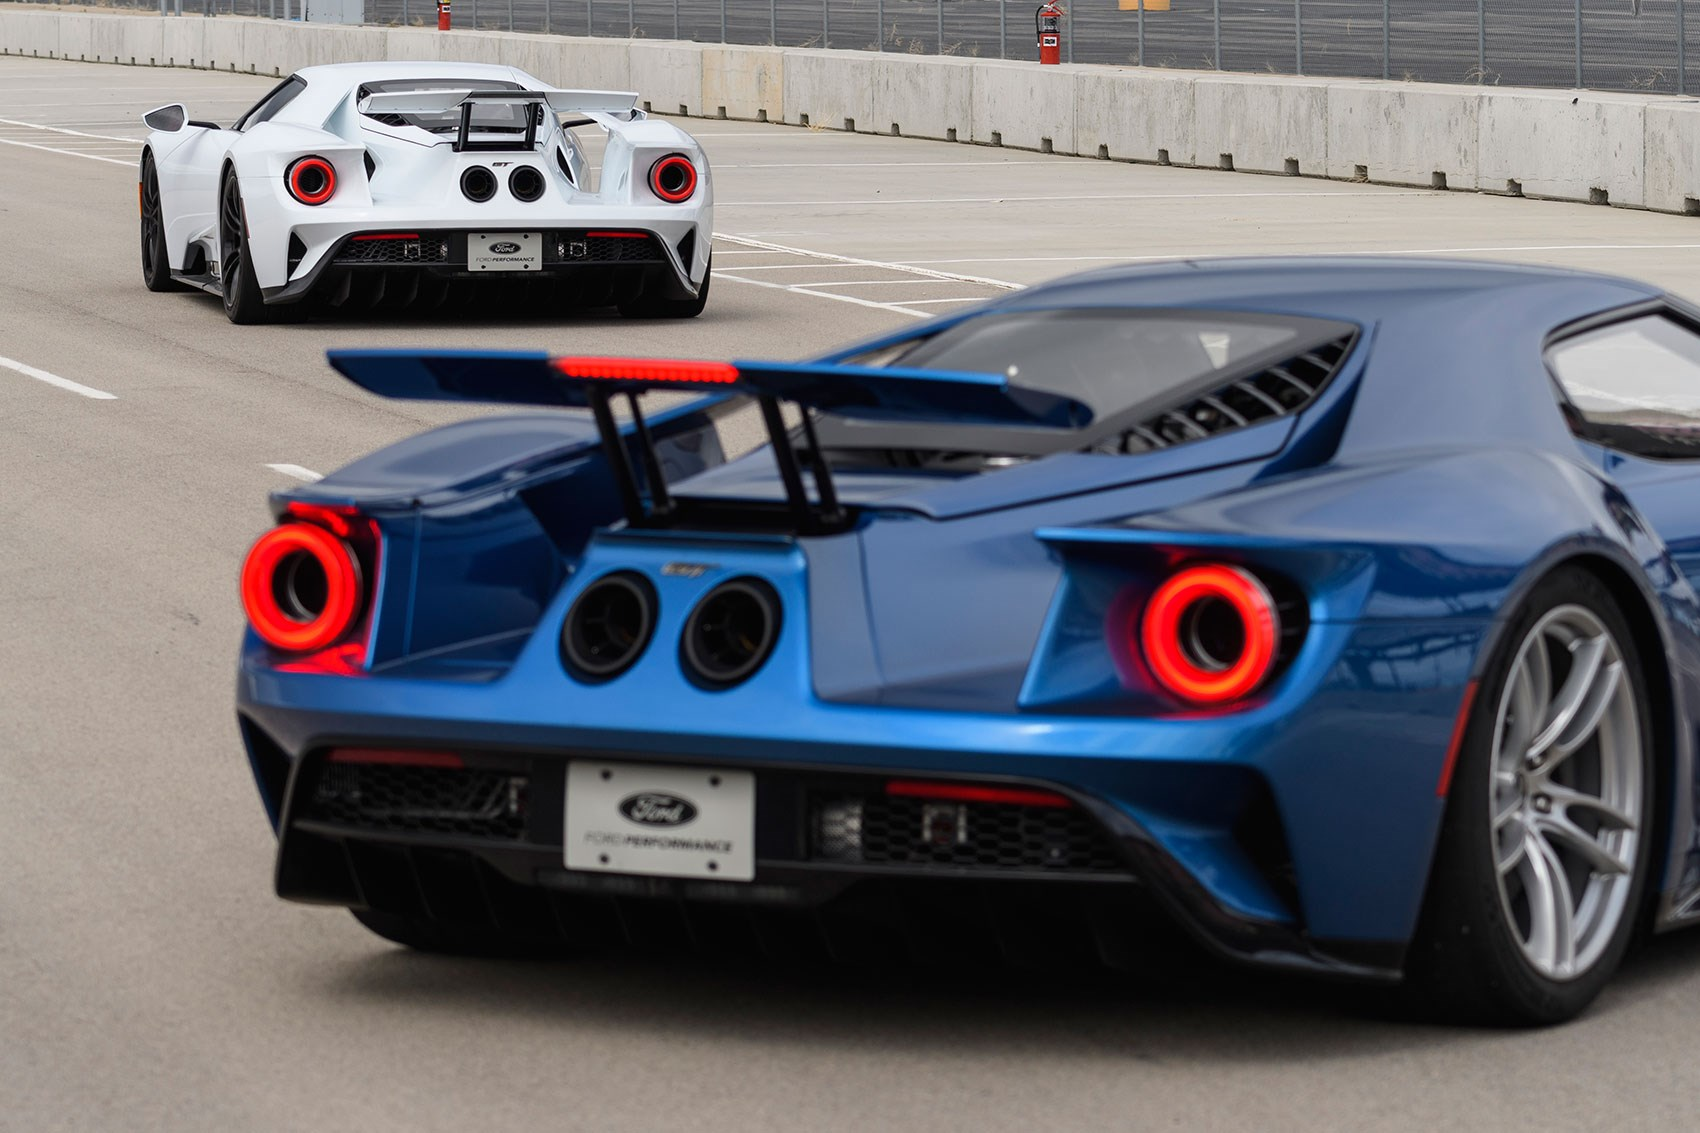 Ford GT: a pretty radical supercar